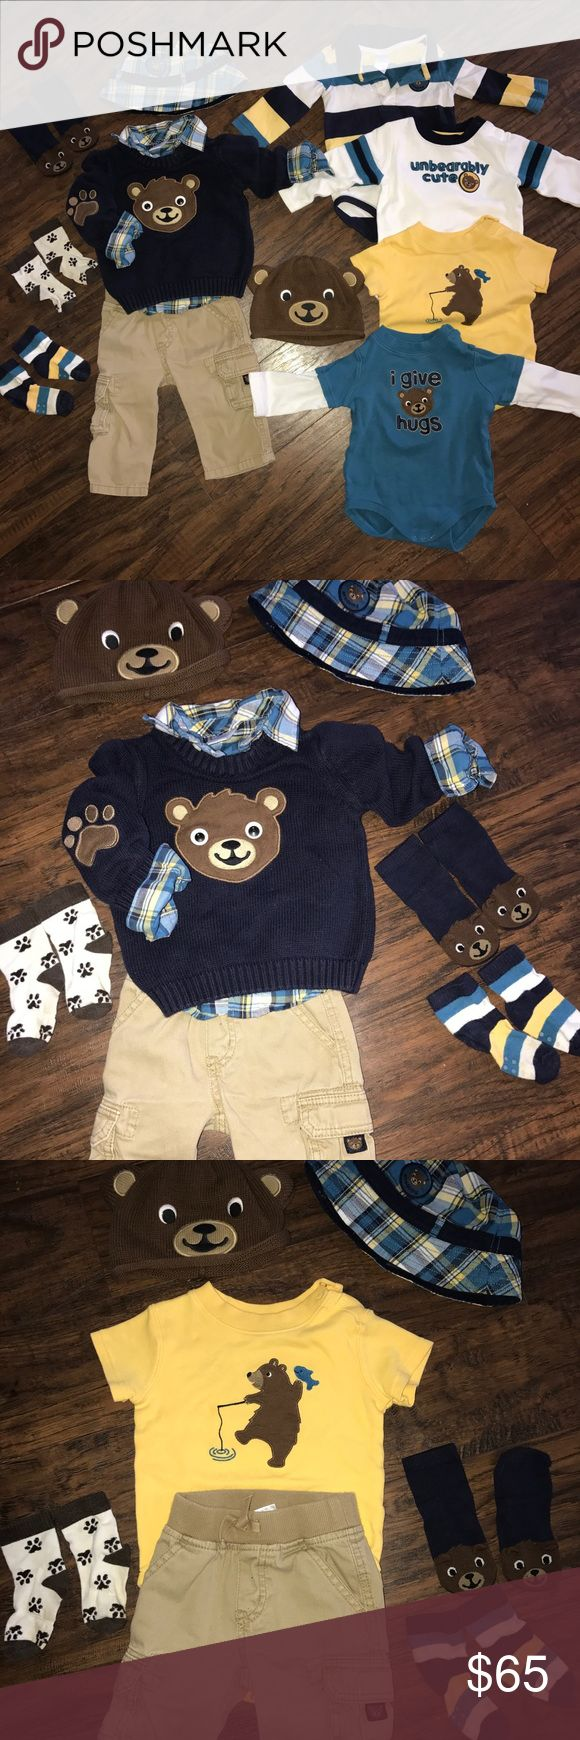 Gymboree Lot boy 6-12 Bear Hugs infant Gymboree Bear Hugs line: 12 pieces  Included: ⭐️Bear sweater: VGUC  ⭐️Plaid shirt button down: VGUC  ⭐️Cargo pants: GUC  ⭐️Bear socks: New without tags ⭐️Paw socks: non Gymboree but match. GUC  ⭐️Stripe socks: GUC  ⭐️Rugby Stripe collared bodysuit GUC  ⭐️White bodysuit: GUC  ⭐️Yellow body suit: VGUC  ⭐️Teal body suit: GUC  ⭐️Bear sweater hat and Plaid hat: EUC GUC=normal wear VGUC=minimal wear  Find me on Facebook!!  Join my group and take 5% off…